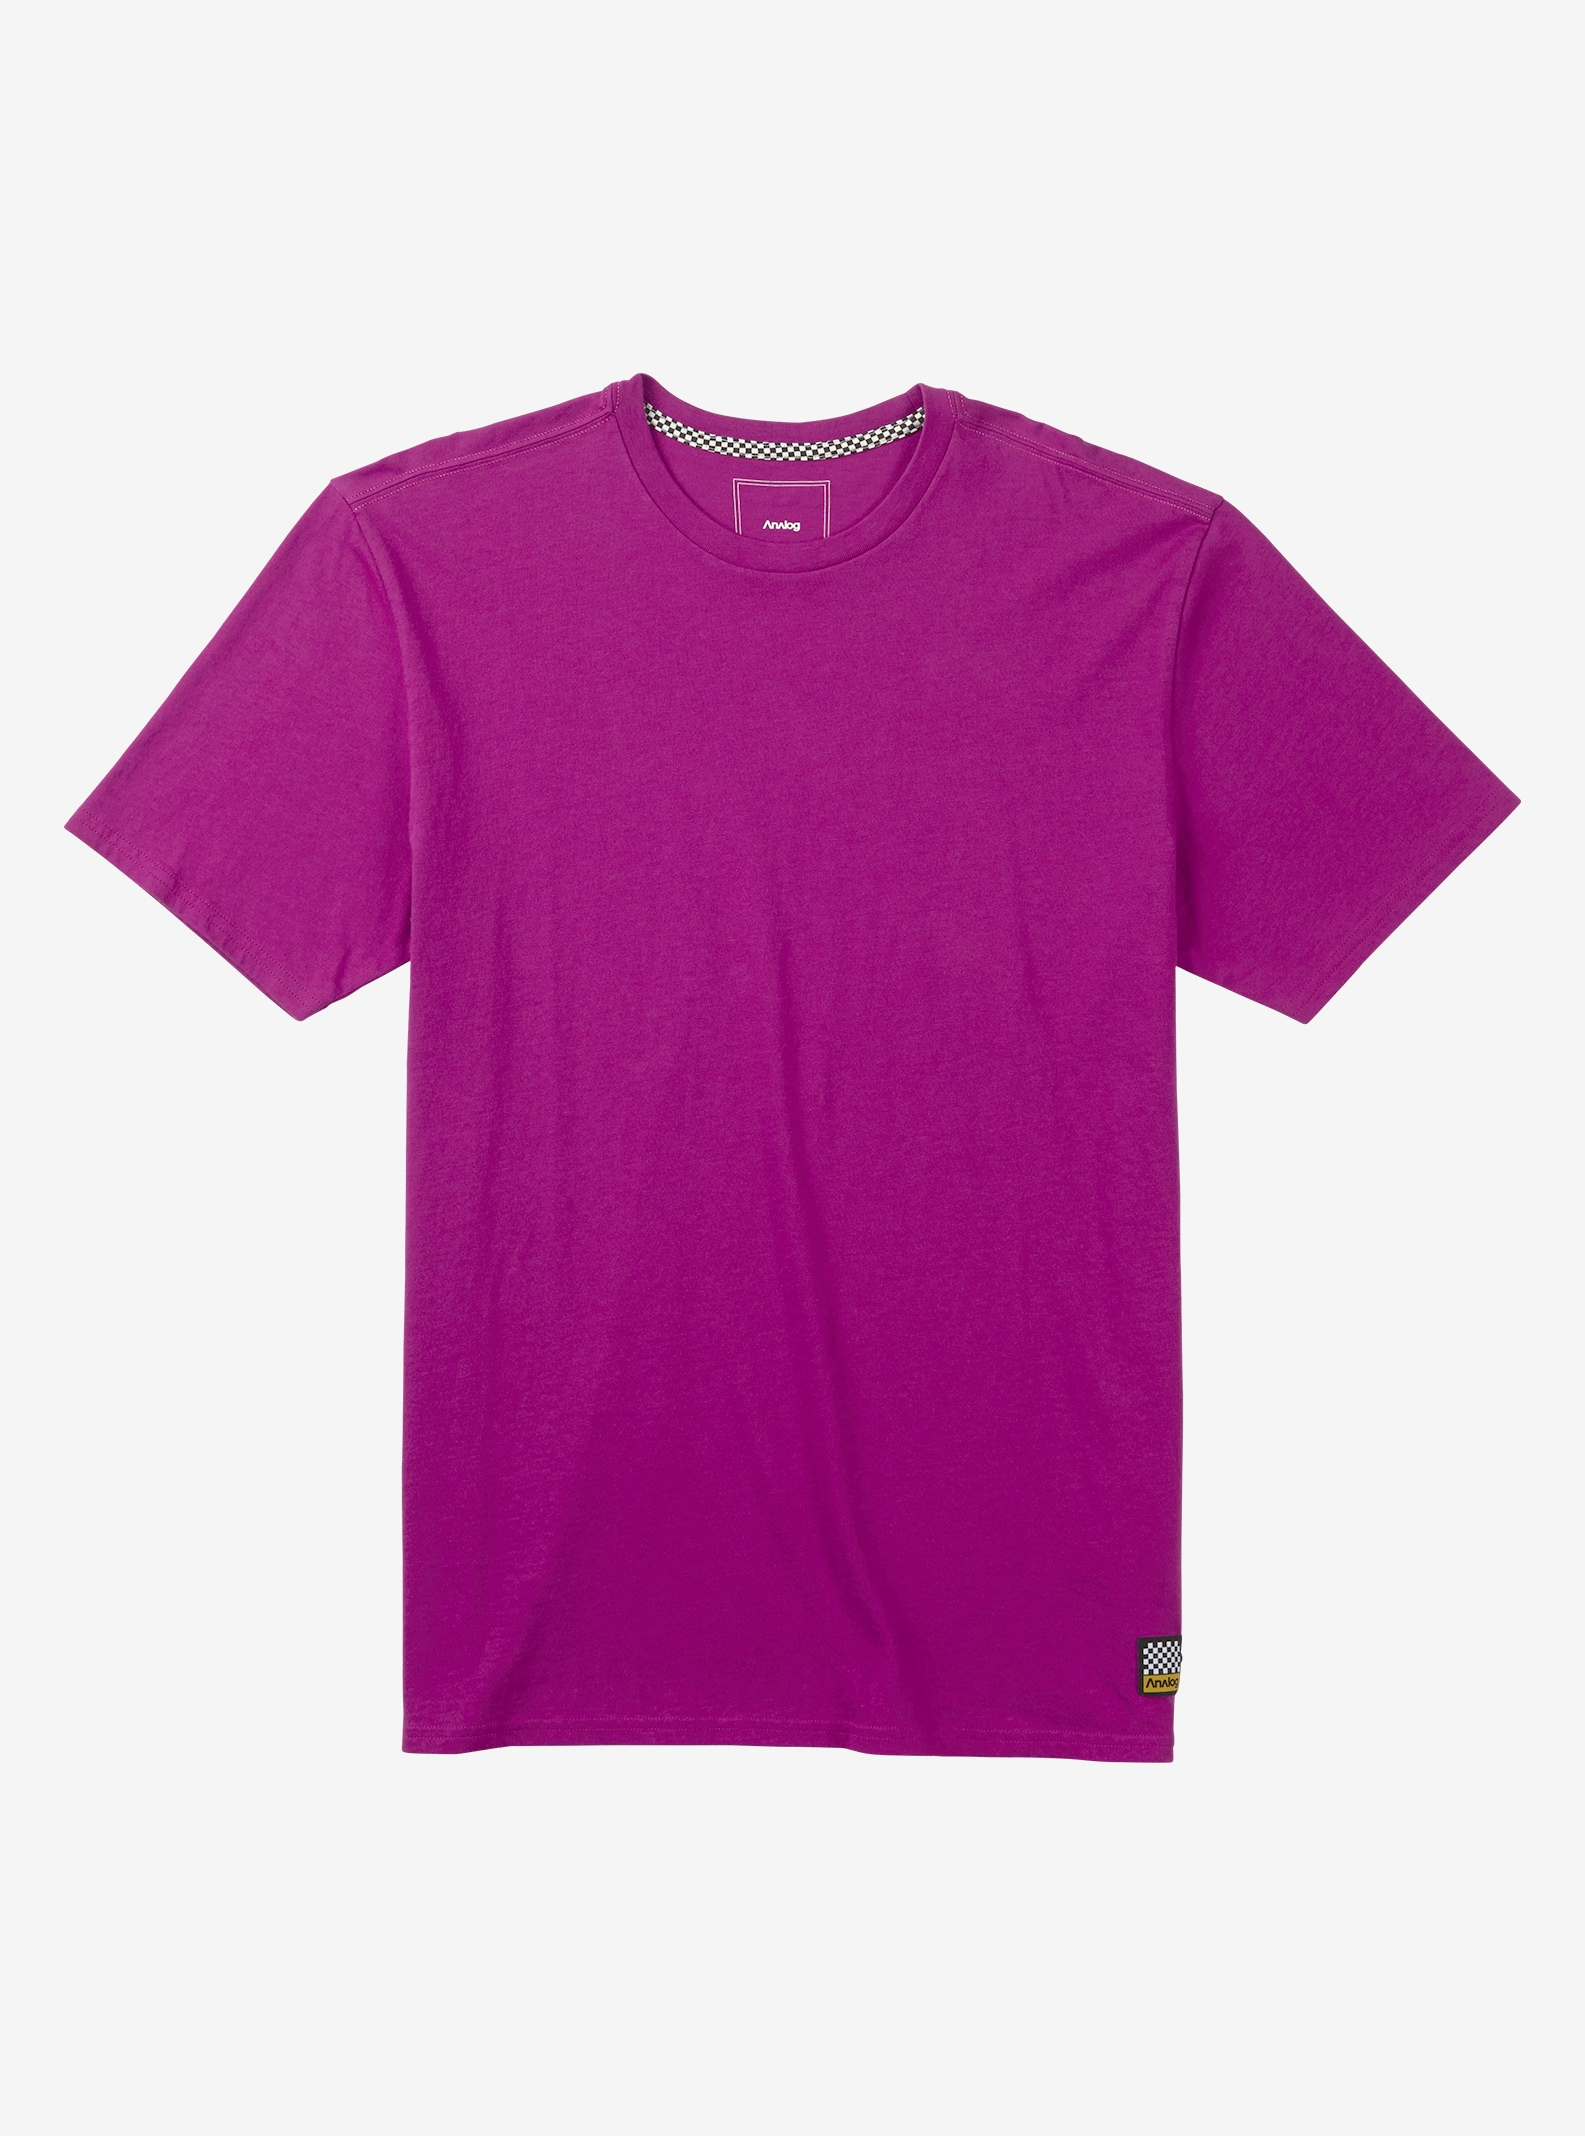 Men's Analog Lafayette Short Sleeve T Shirt shown in Grapeseed